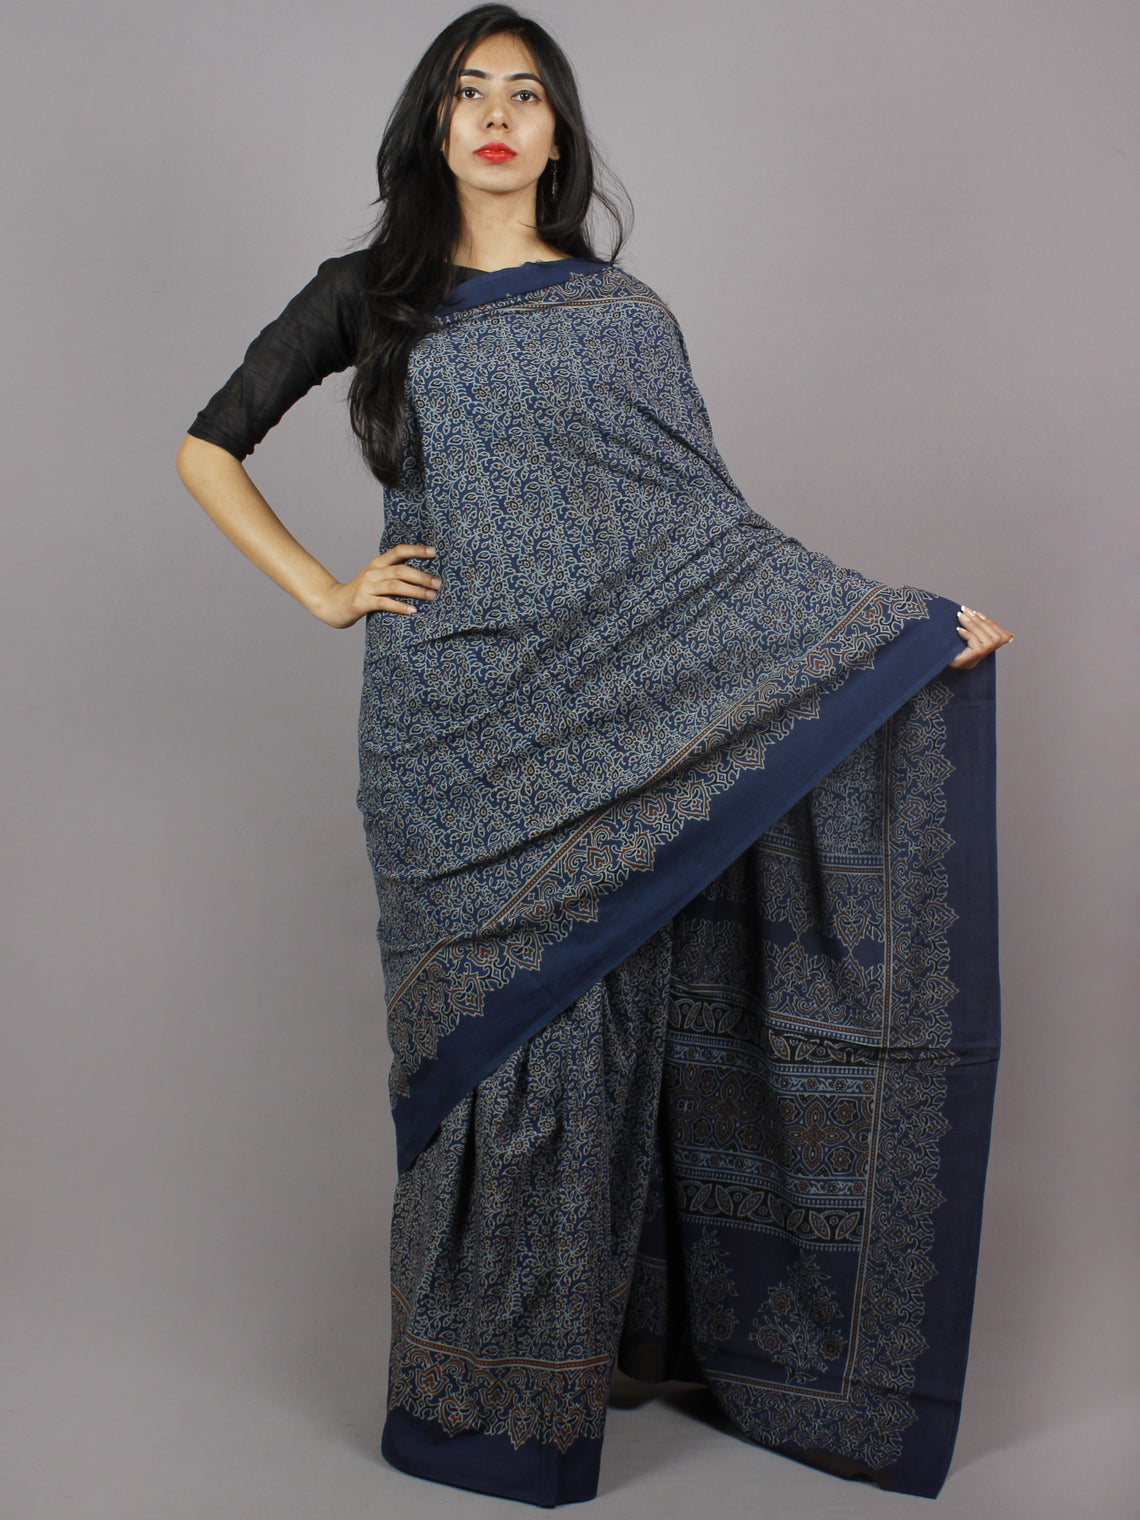 Indigo Brown Ivory Black Mughal Nakashi Ajrakh Hand Block Printed in Natural Vegetable Colors Cotton Mul Saree - S031701282